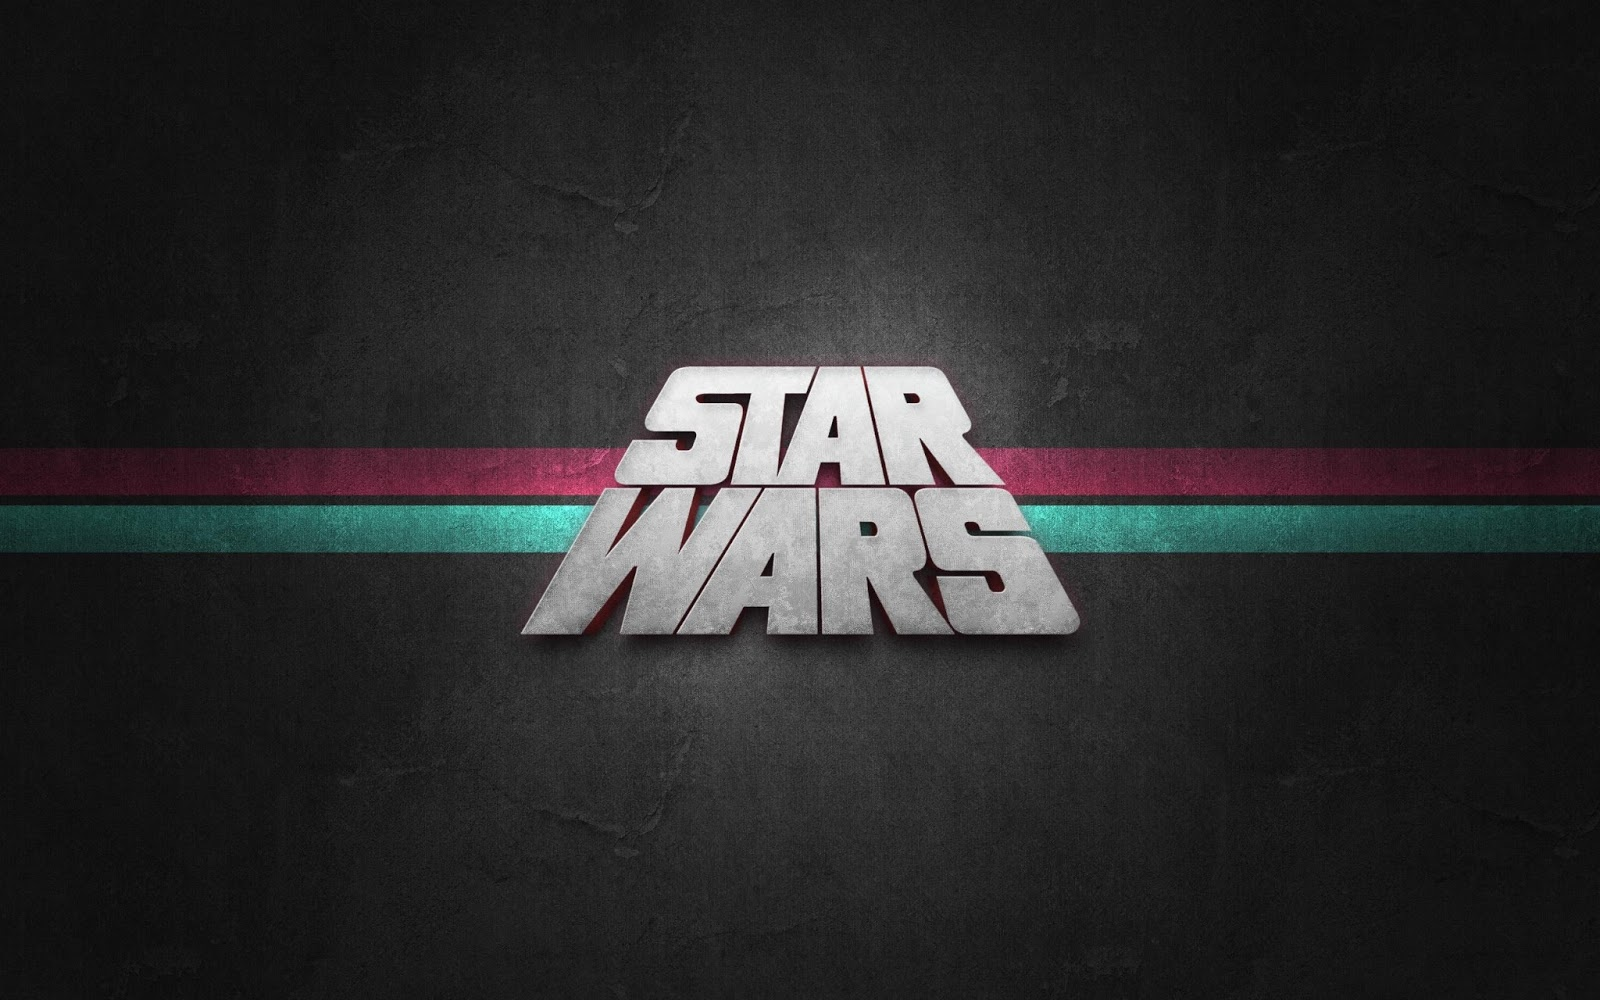 Star Wars Backgrounds - Brian on Star Wars